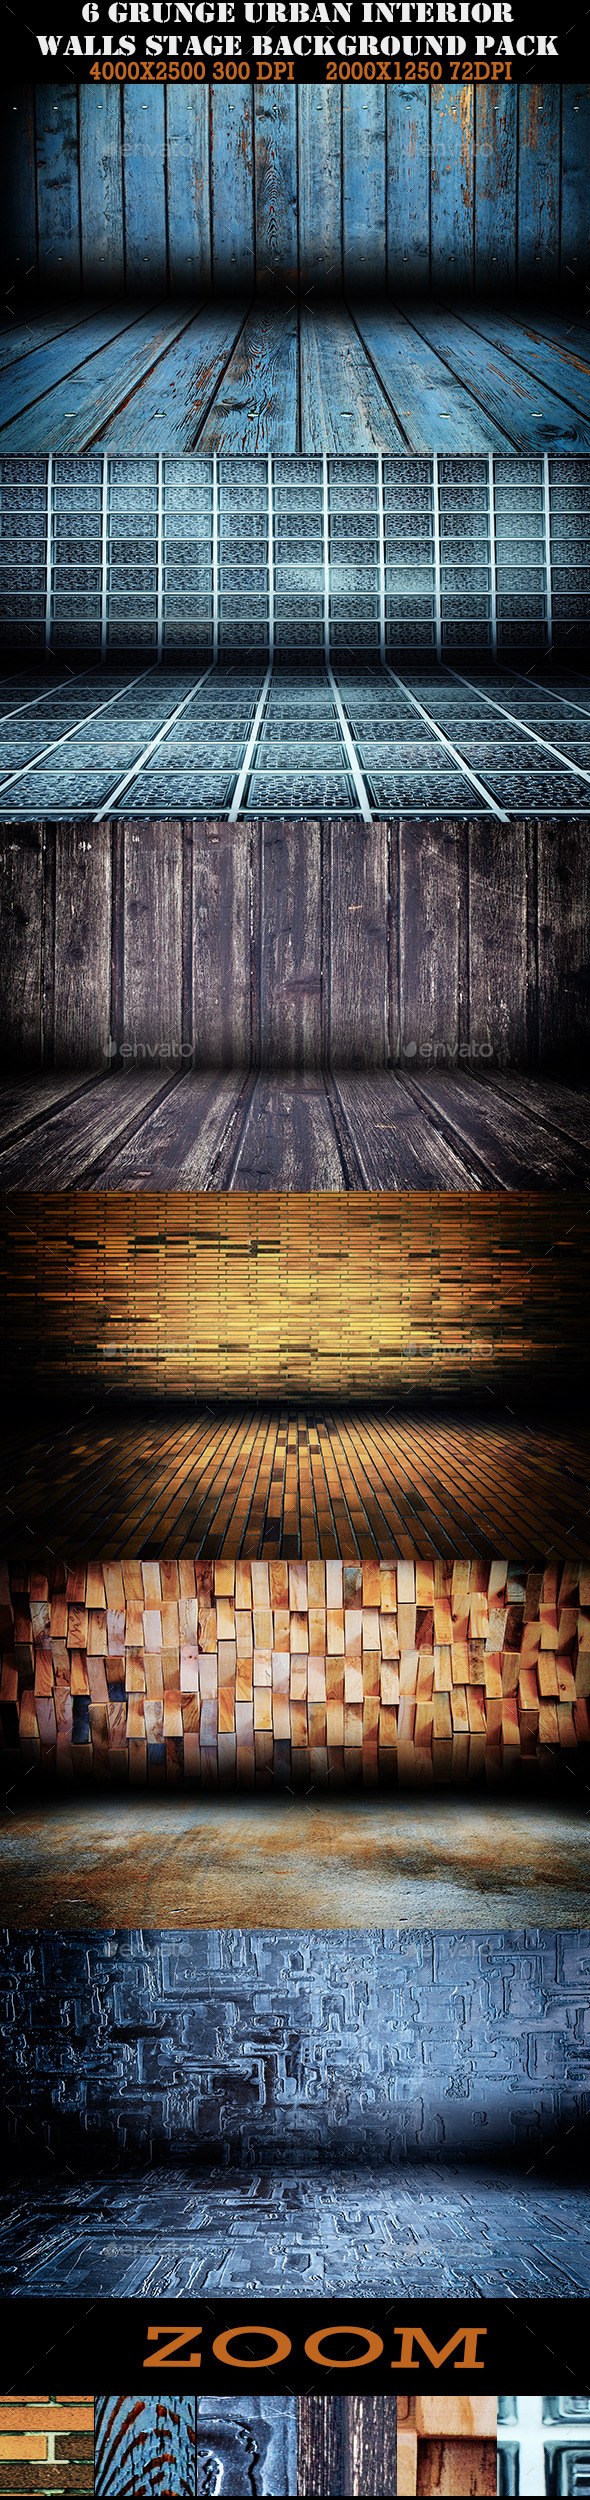 6 Urban Interior Stage Grunge Walls - Urban Backgrounds